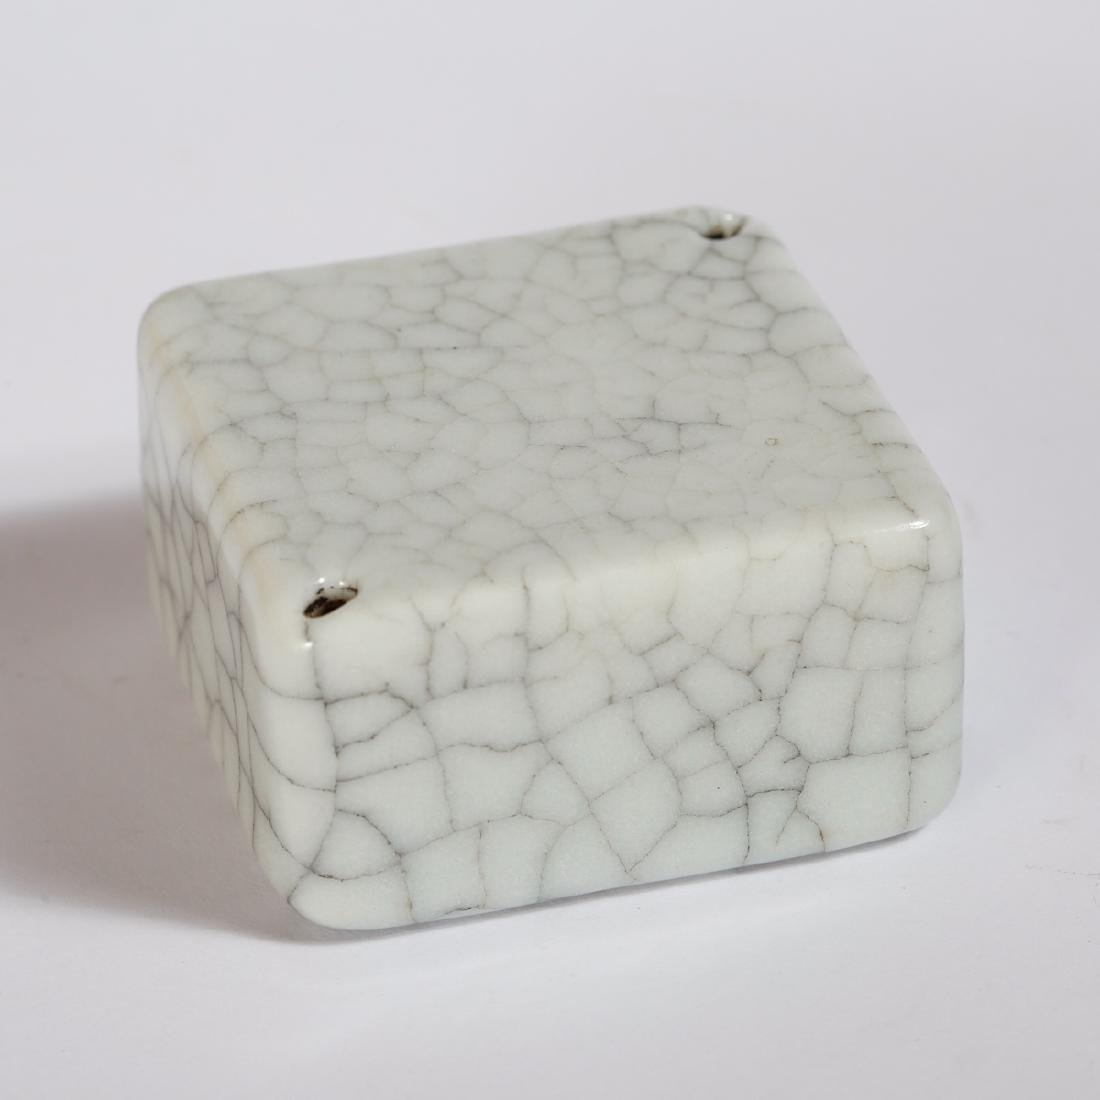 CHINESE CRACKLE GLAZED PORCELAIN WEIGHT - 2